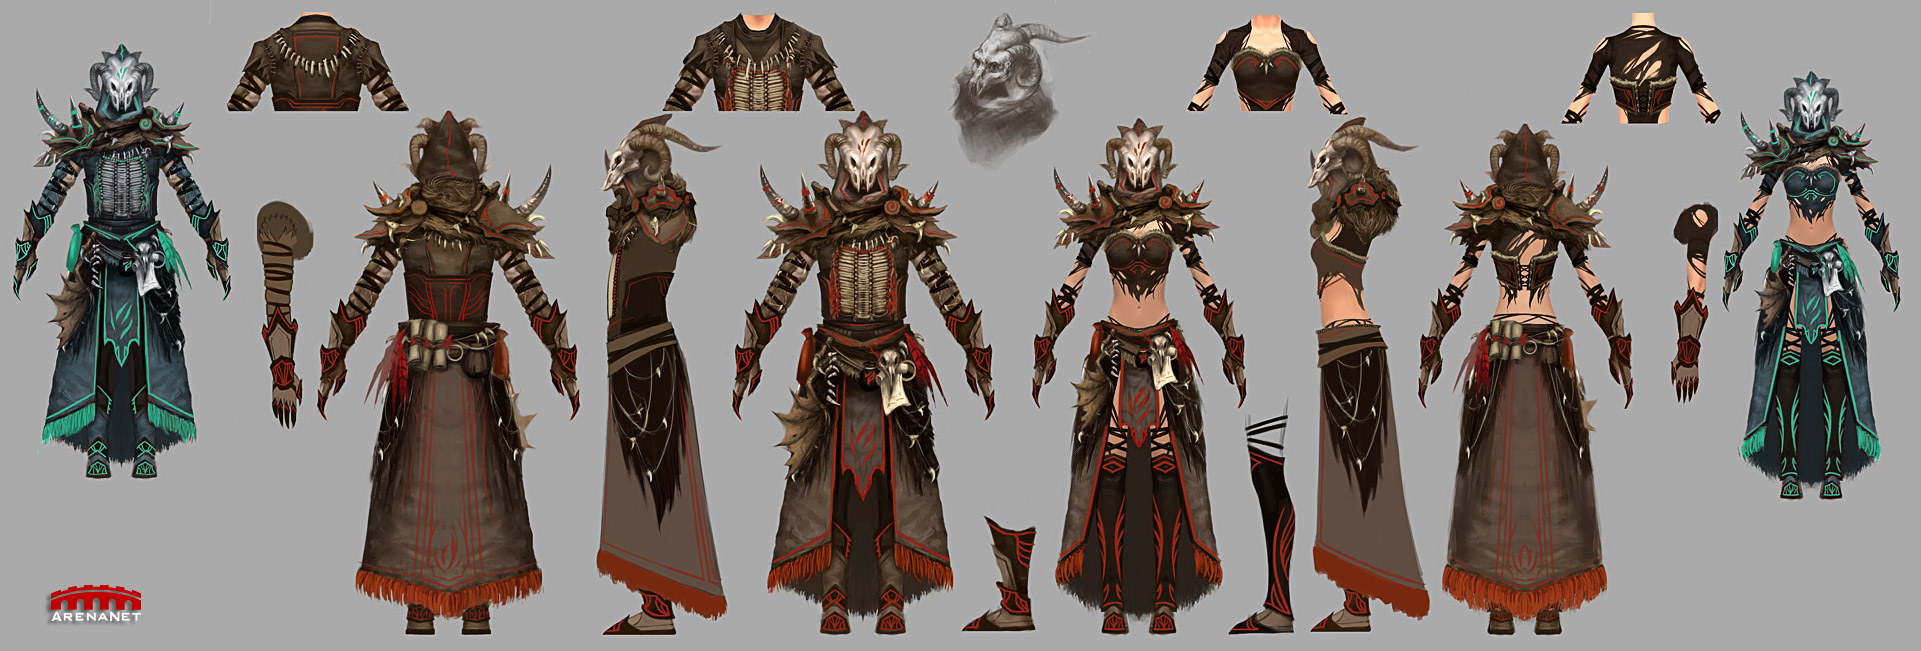 guild_wars_2_light_armor_by_yeewu-d306ent.jpg